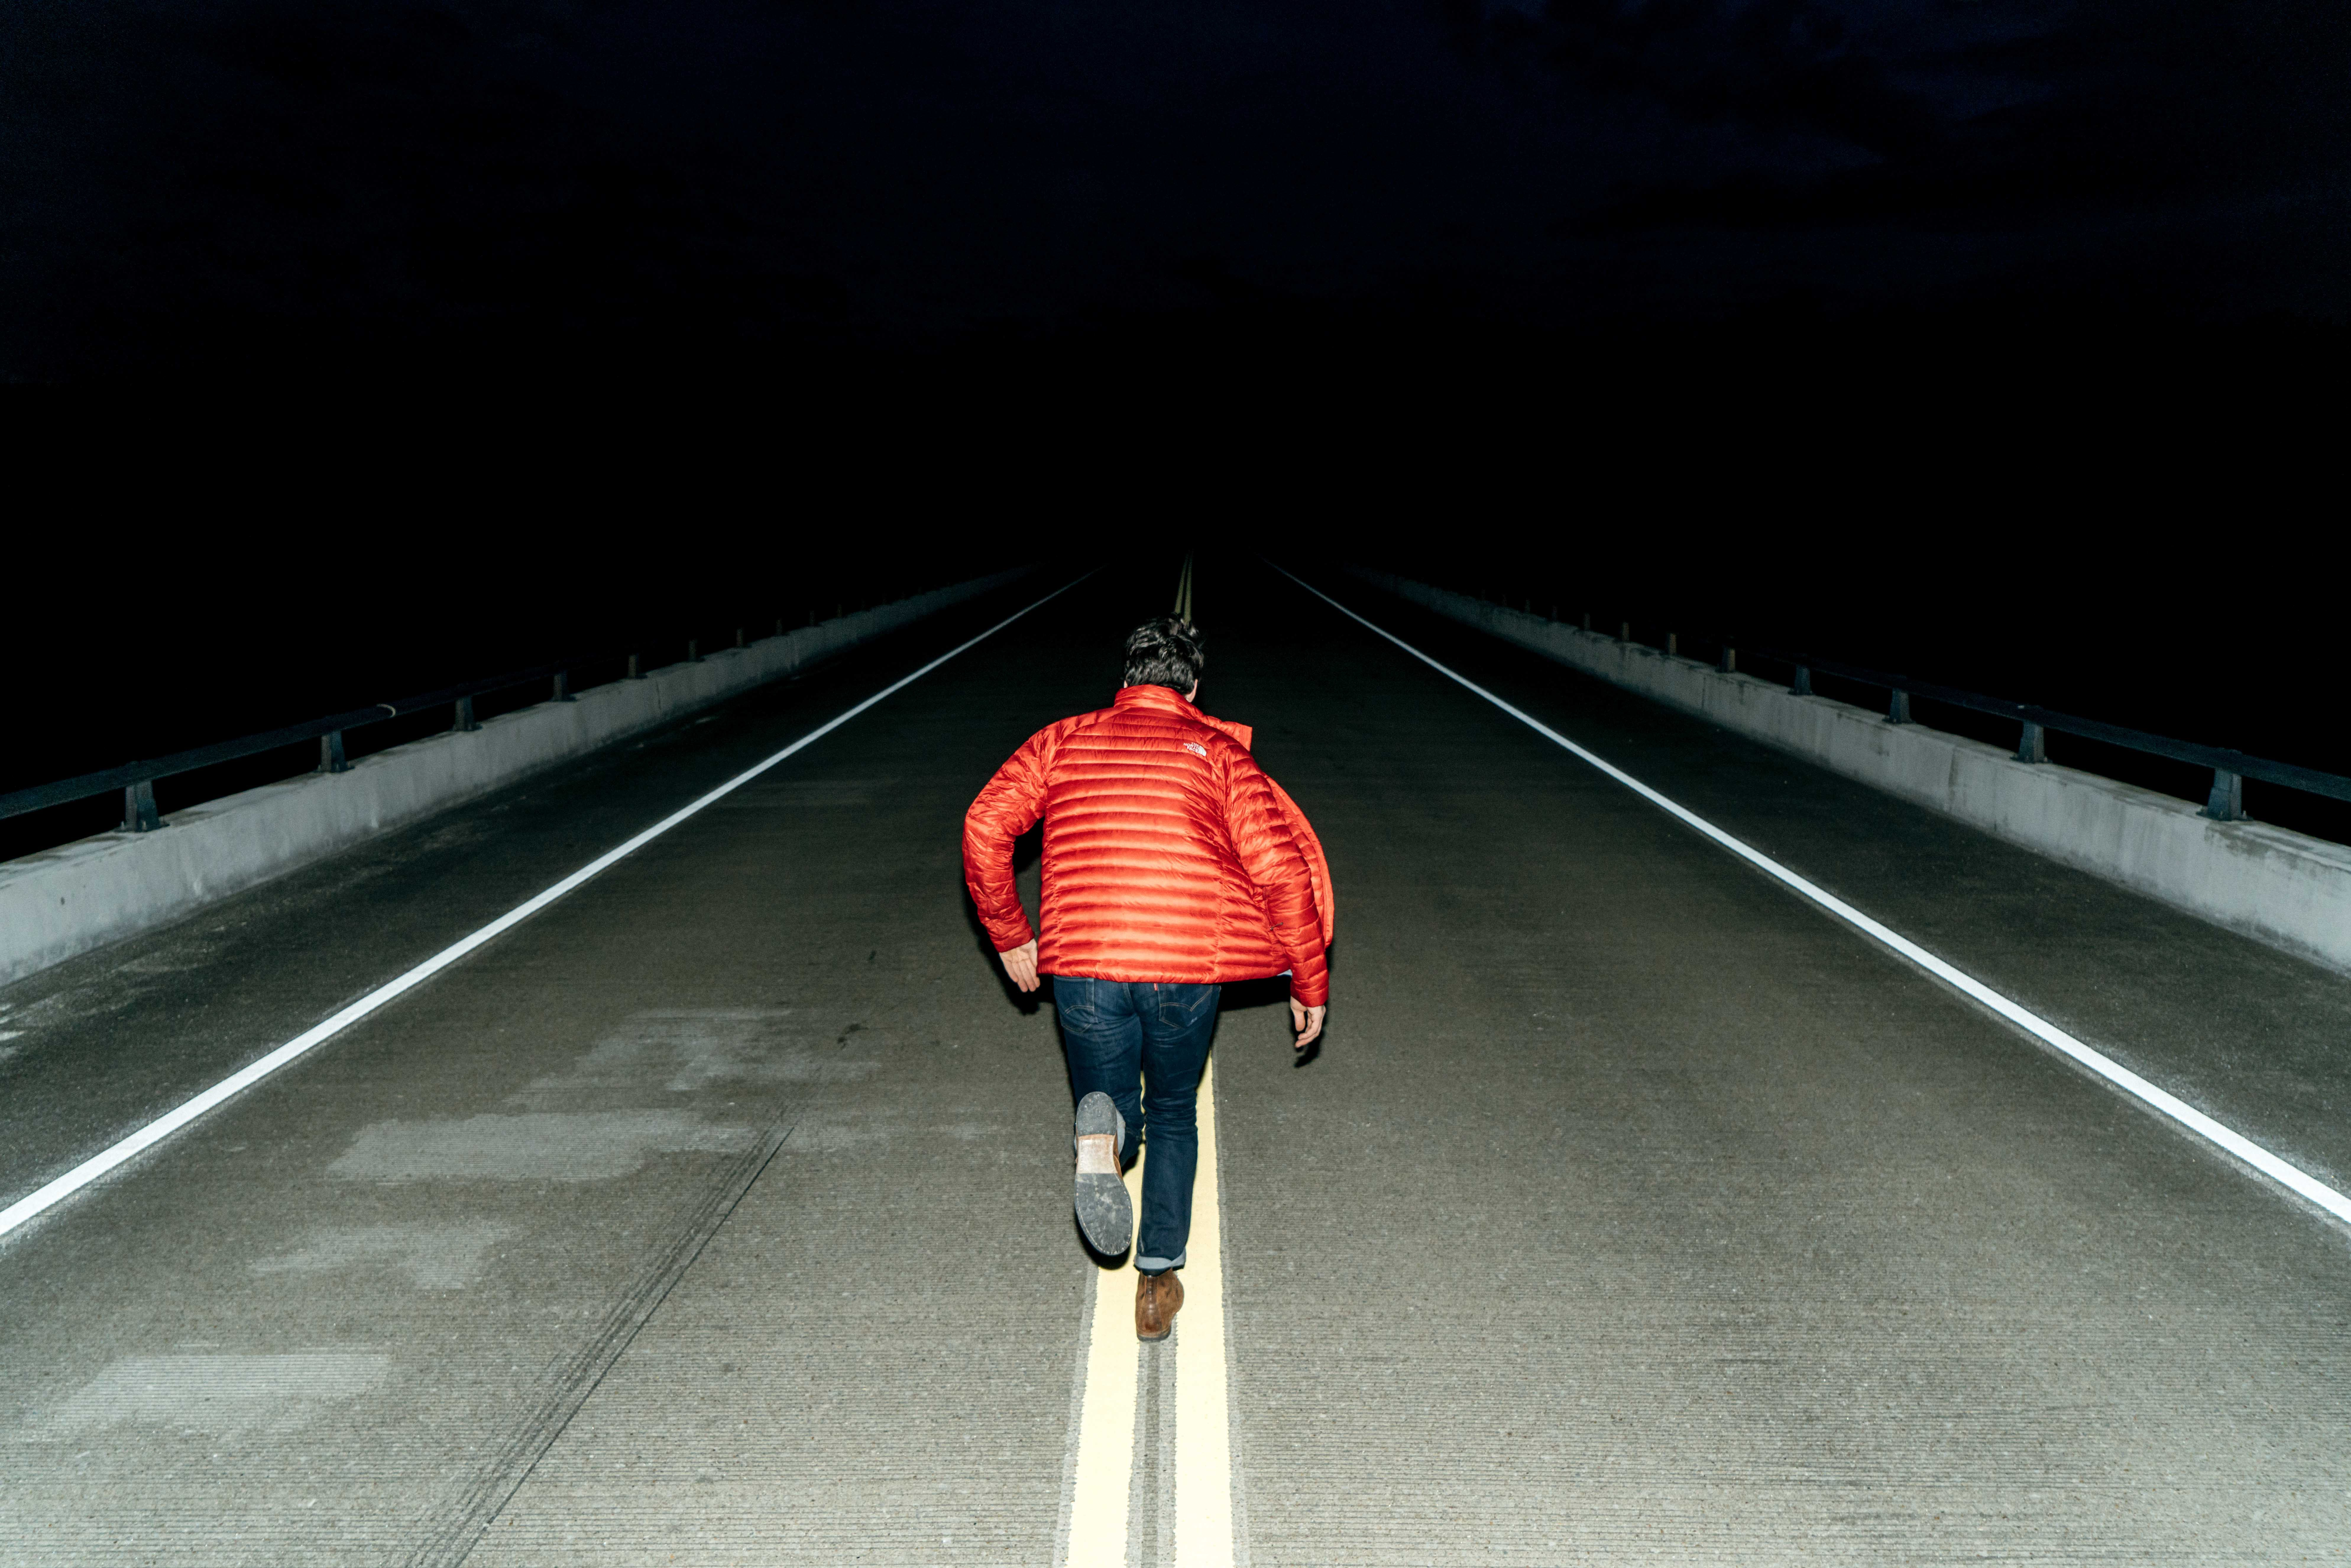 man running on road during night time